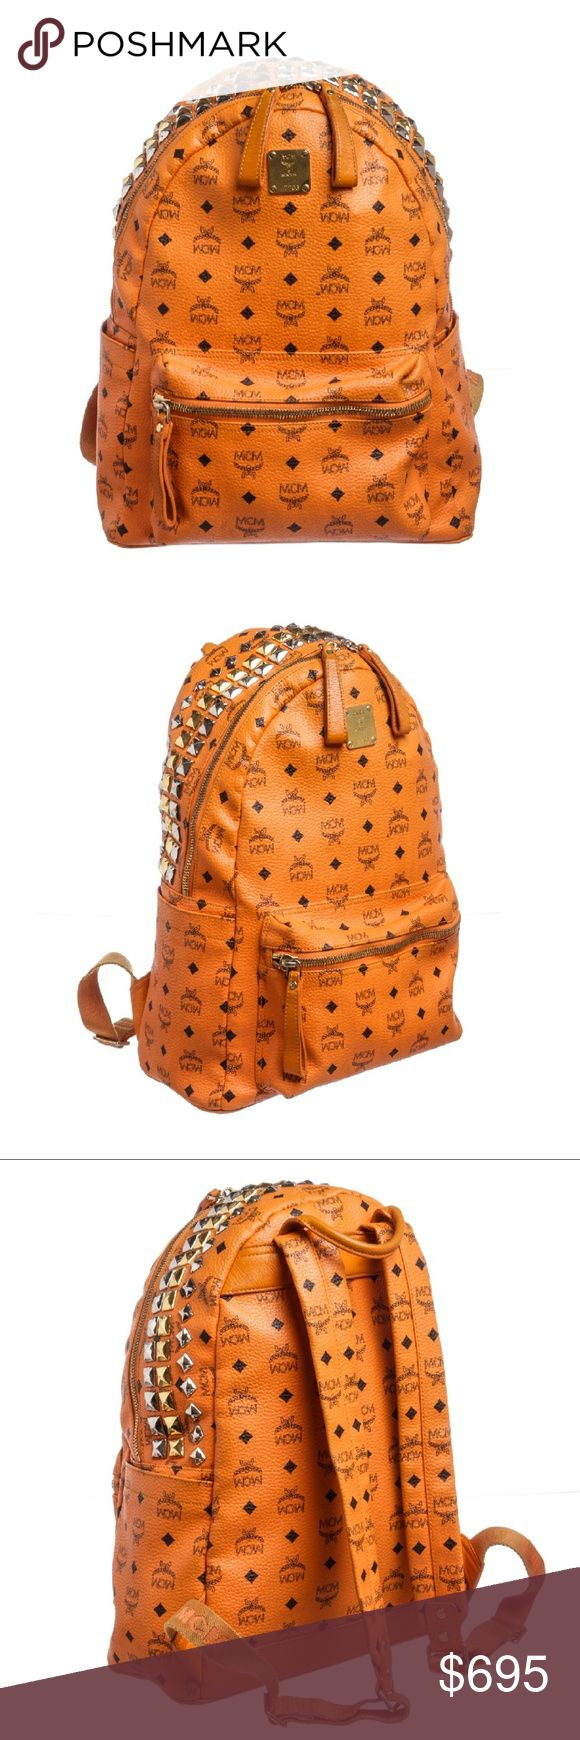 MCM Orange Visetos Coated Medium Stark Backpack Overall zipper closure top studded.  Interior is fabric lined, side zipper pocket, and two side slip pockets. Exterior zipper pocket.  Two exterior side slip pockets.  Adjustable straps. Shop AUTHENTIC MCM backpacks at MARQUE SUPPLY COMPANY.    5197MSC MCM Bags Backpacks